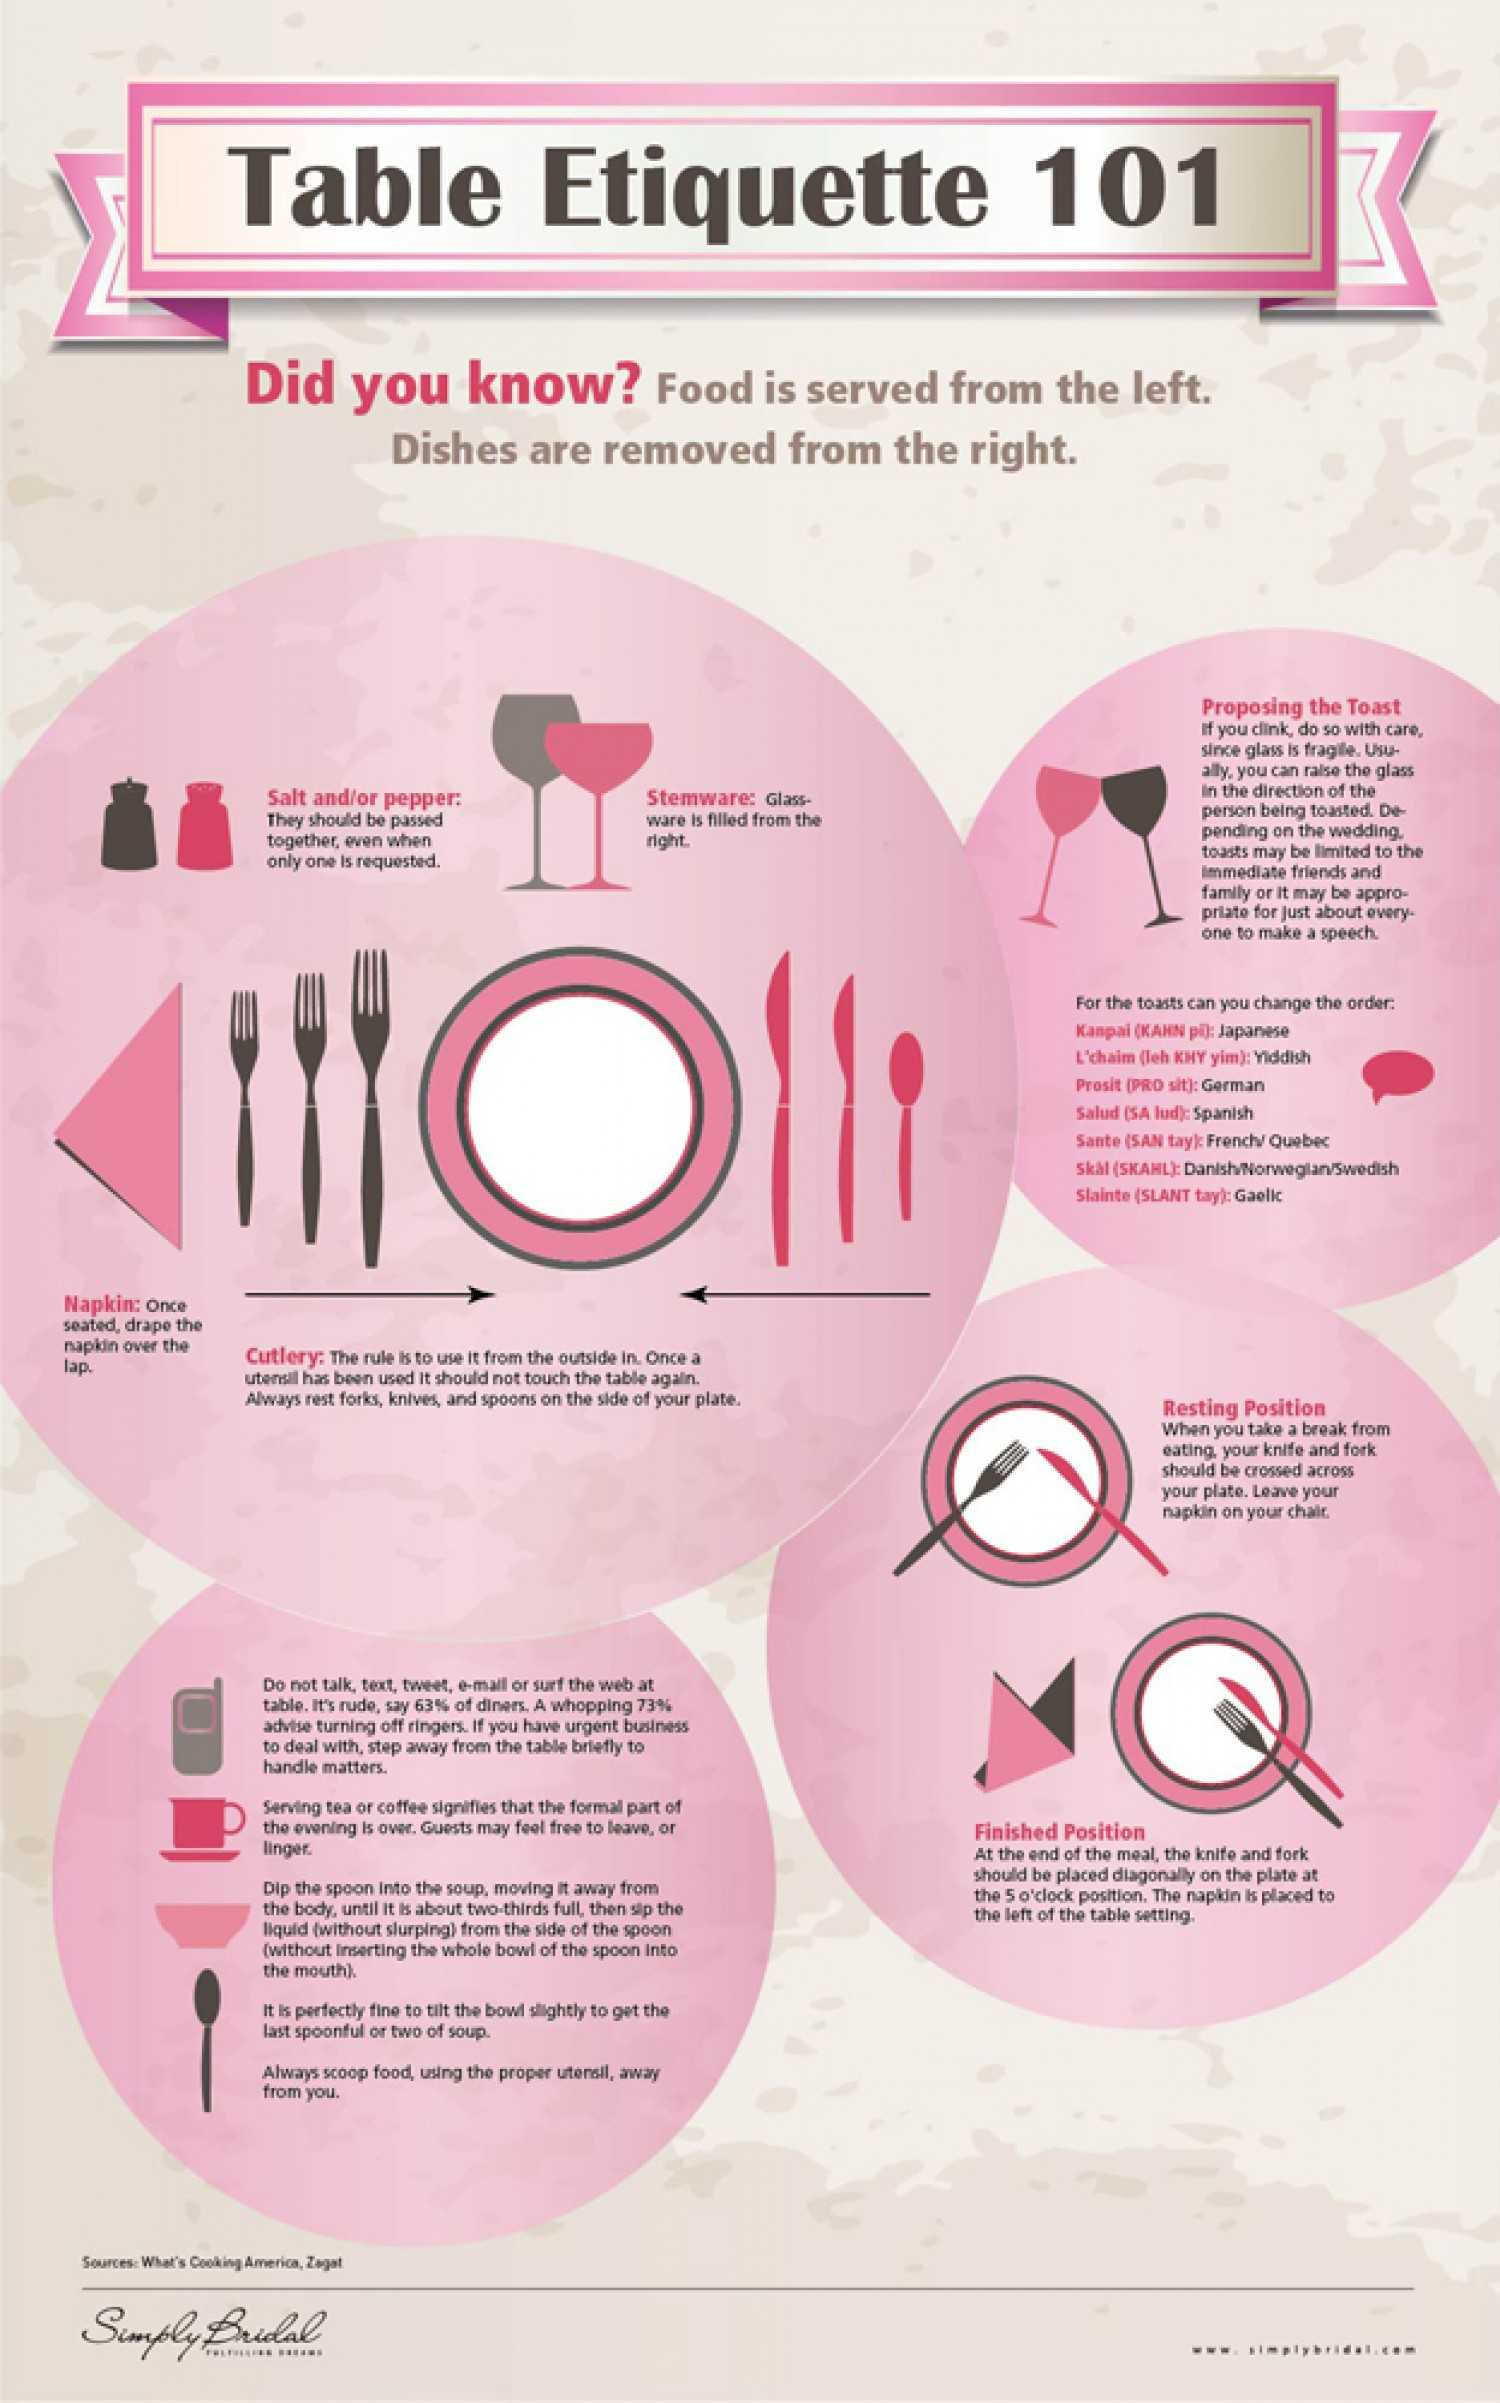 Place Settings & Table Etiquette 101 For Your Wedding